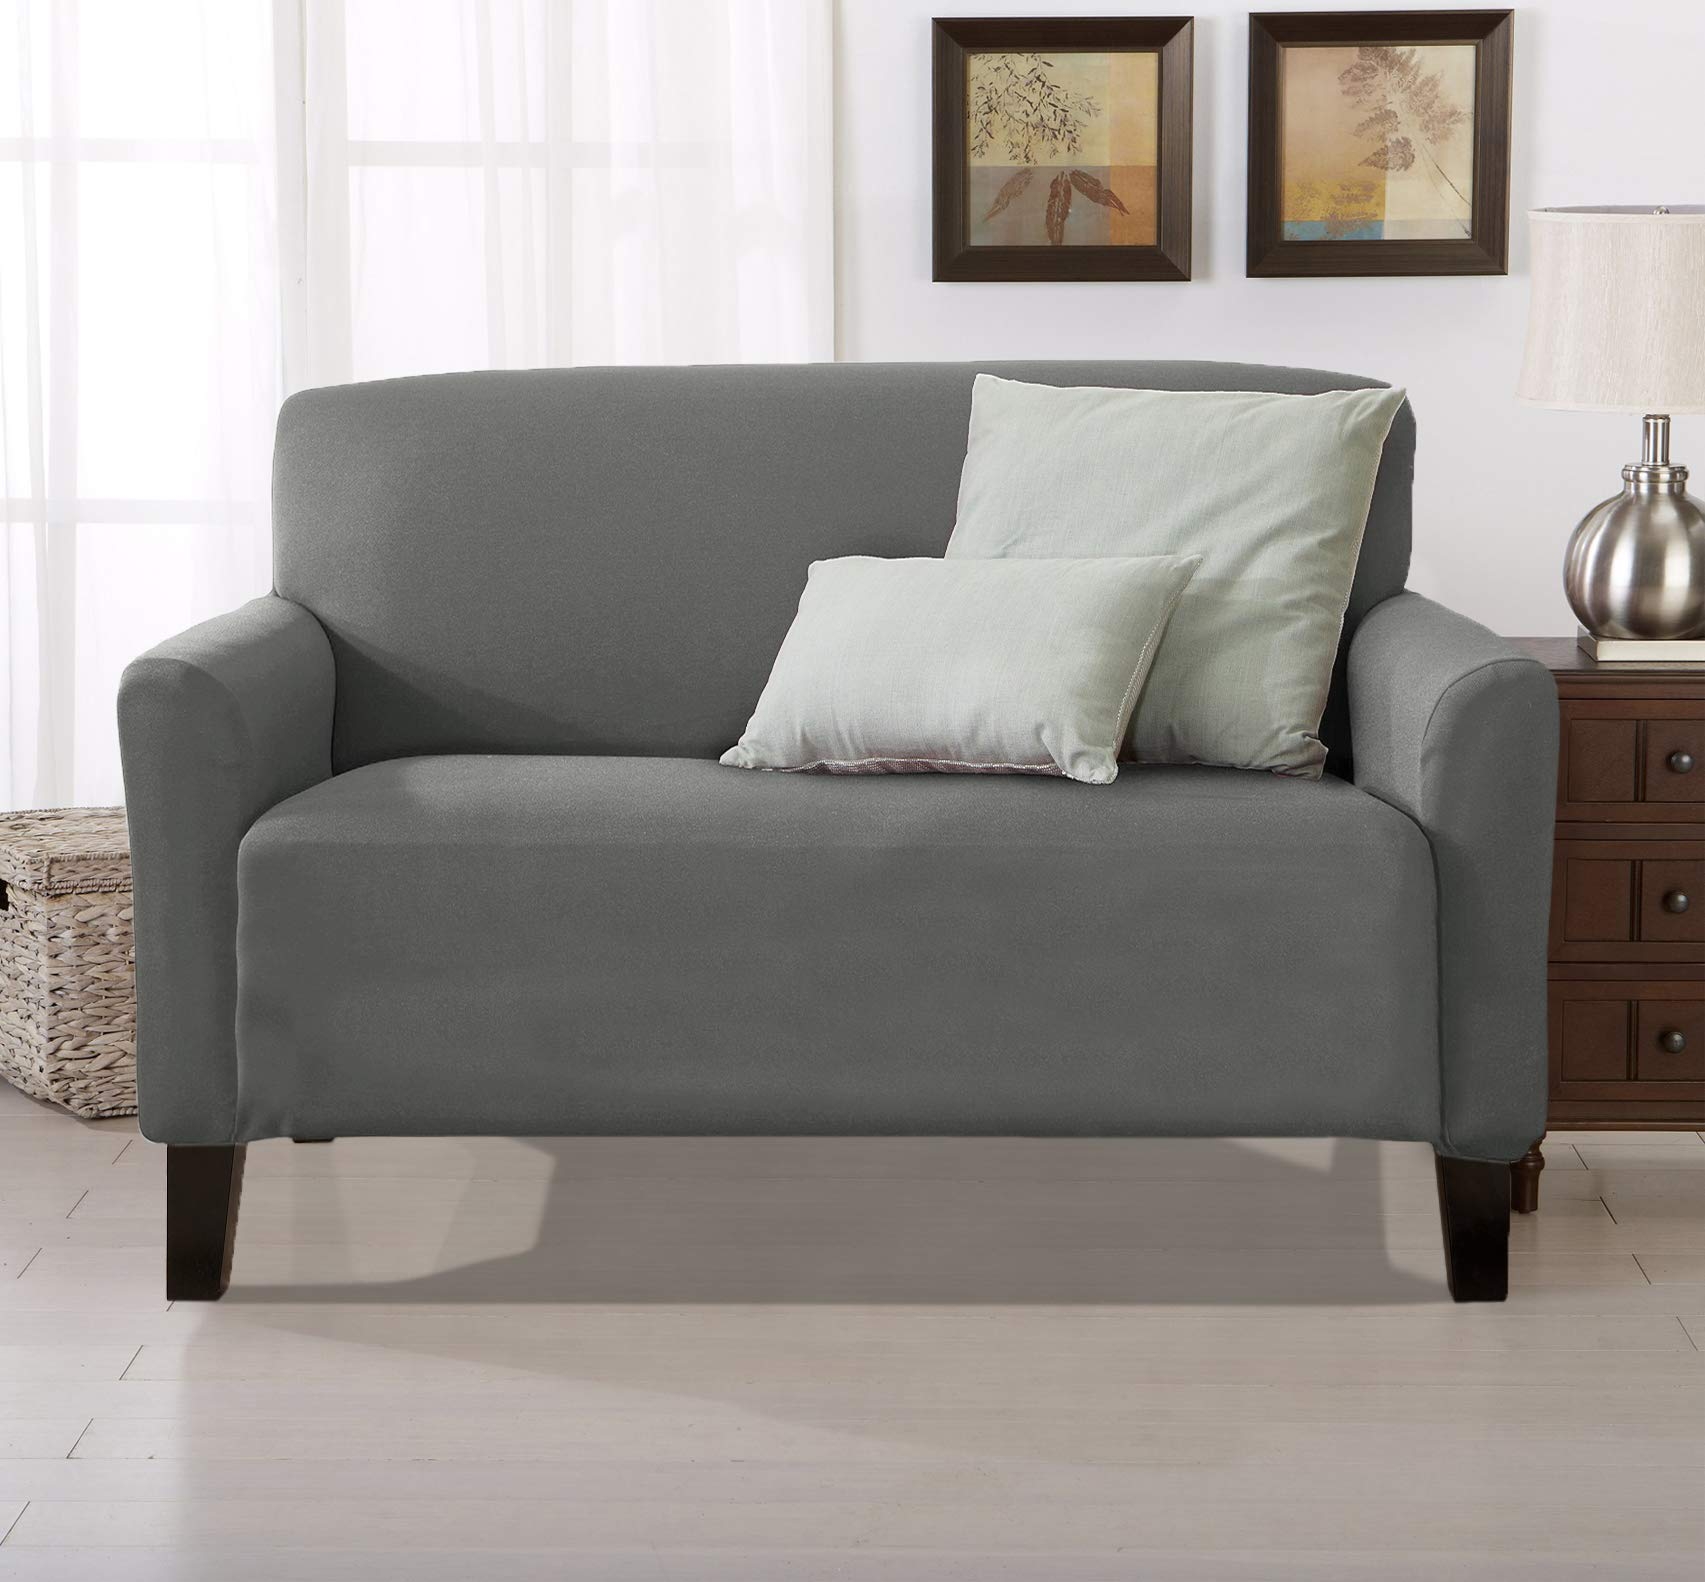 Home Fashion Designs Form Fit, Slip Resistant, Stylish Furniture Cover/Protector Featuring Lightweight Stretch Twill Fabric. Brenna Collection Strapless Slipcover (Loveseat, Charcoal - Solid)